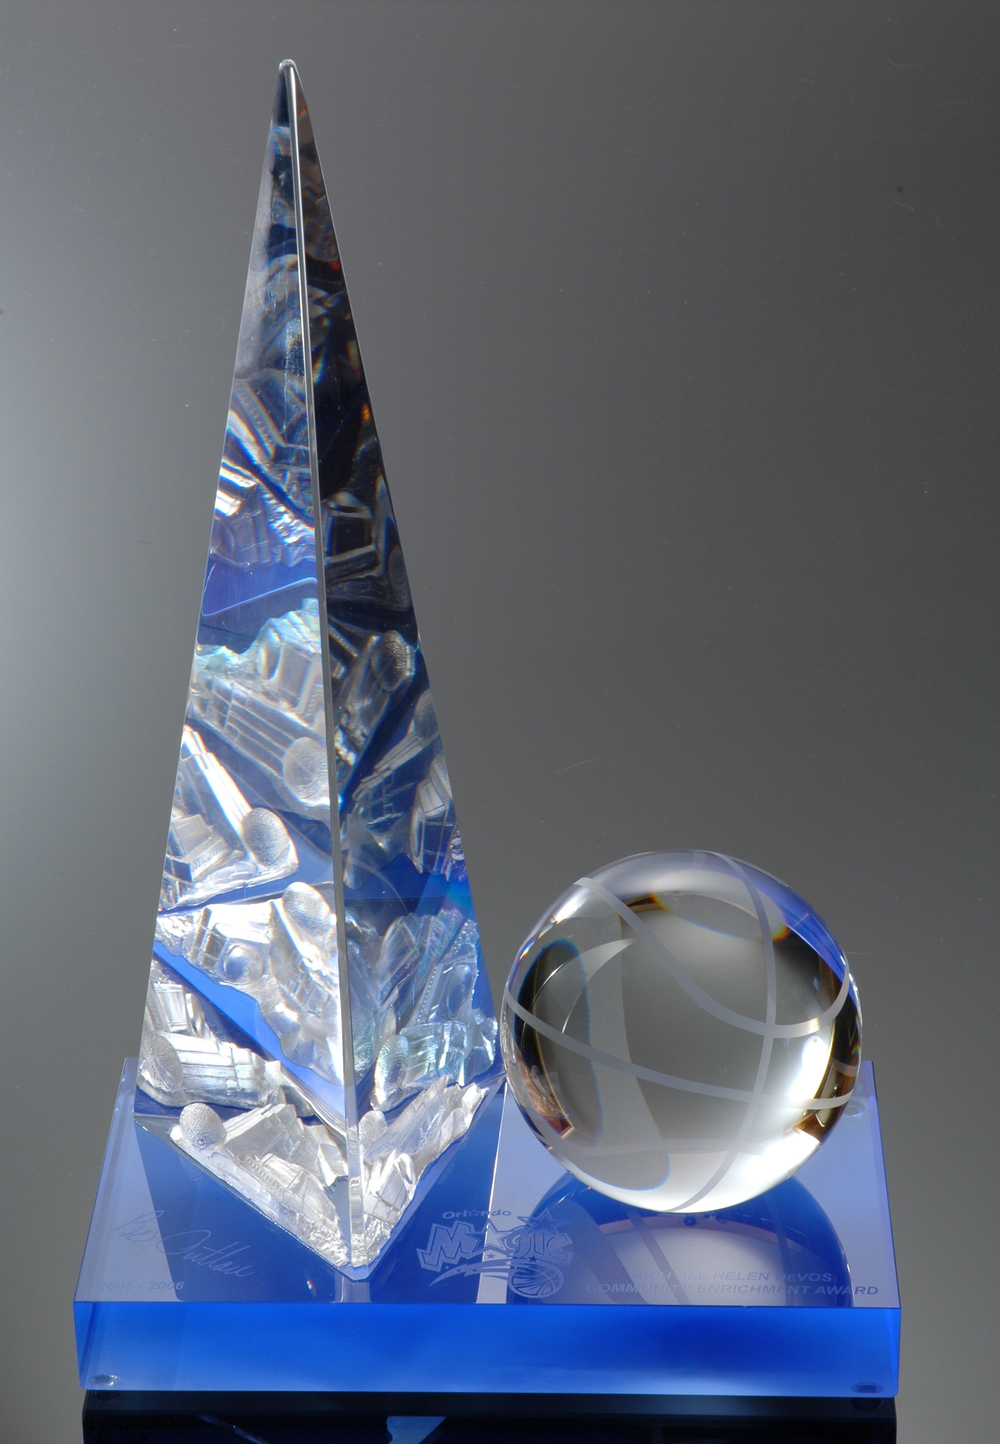 Orlando Magic Annual Award